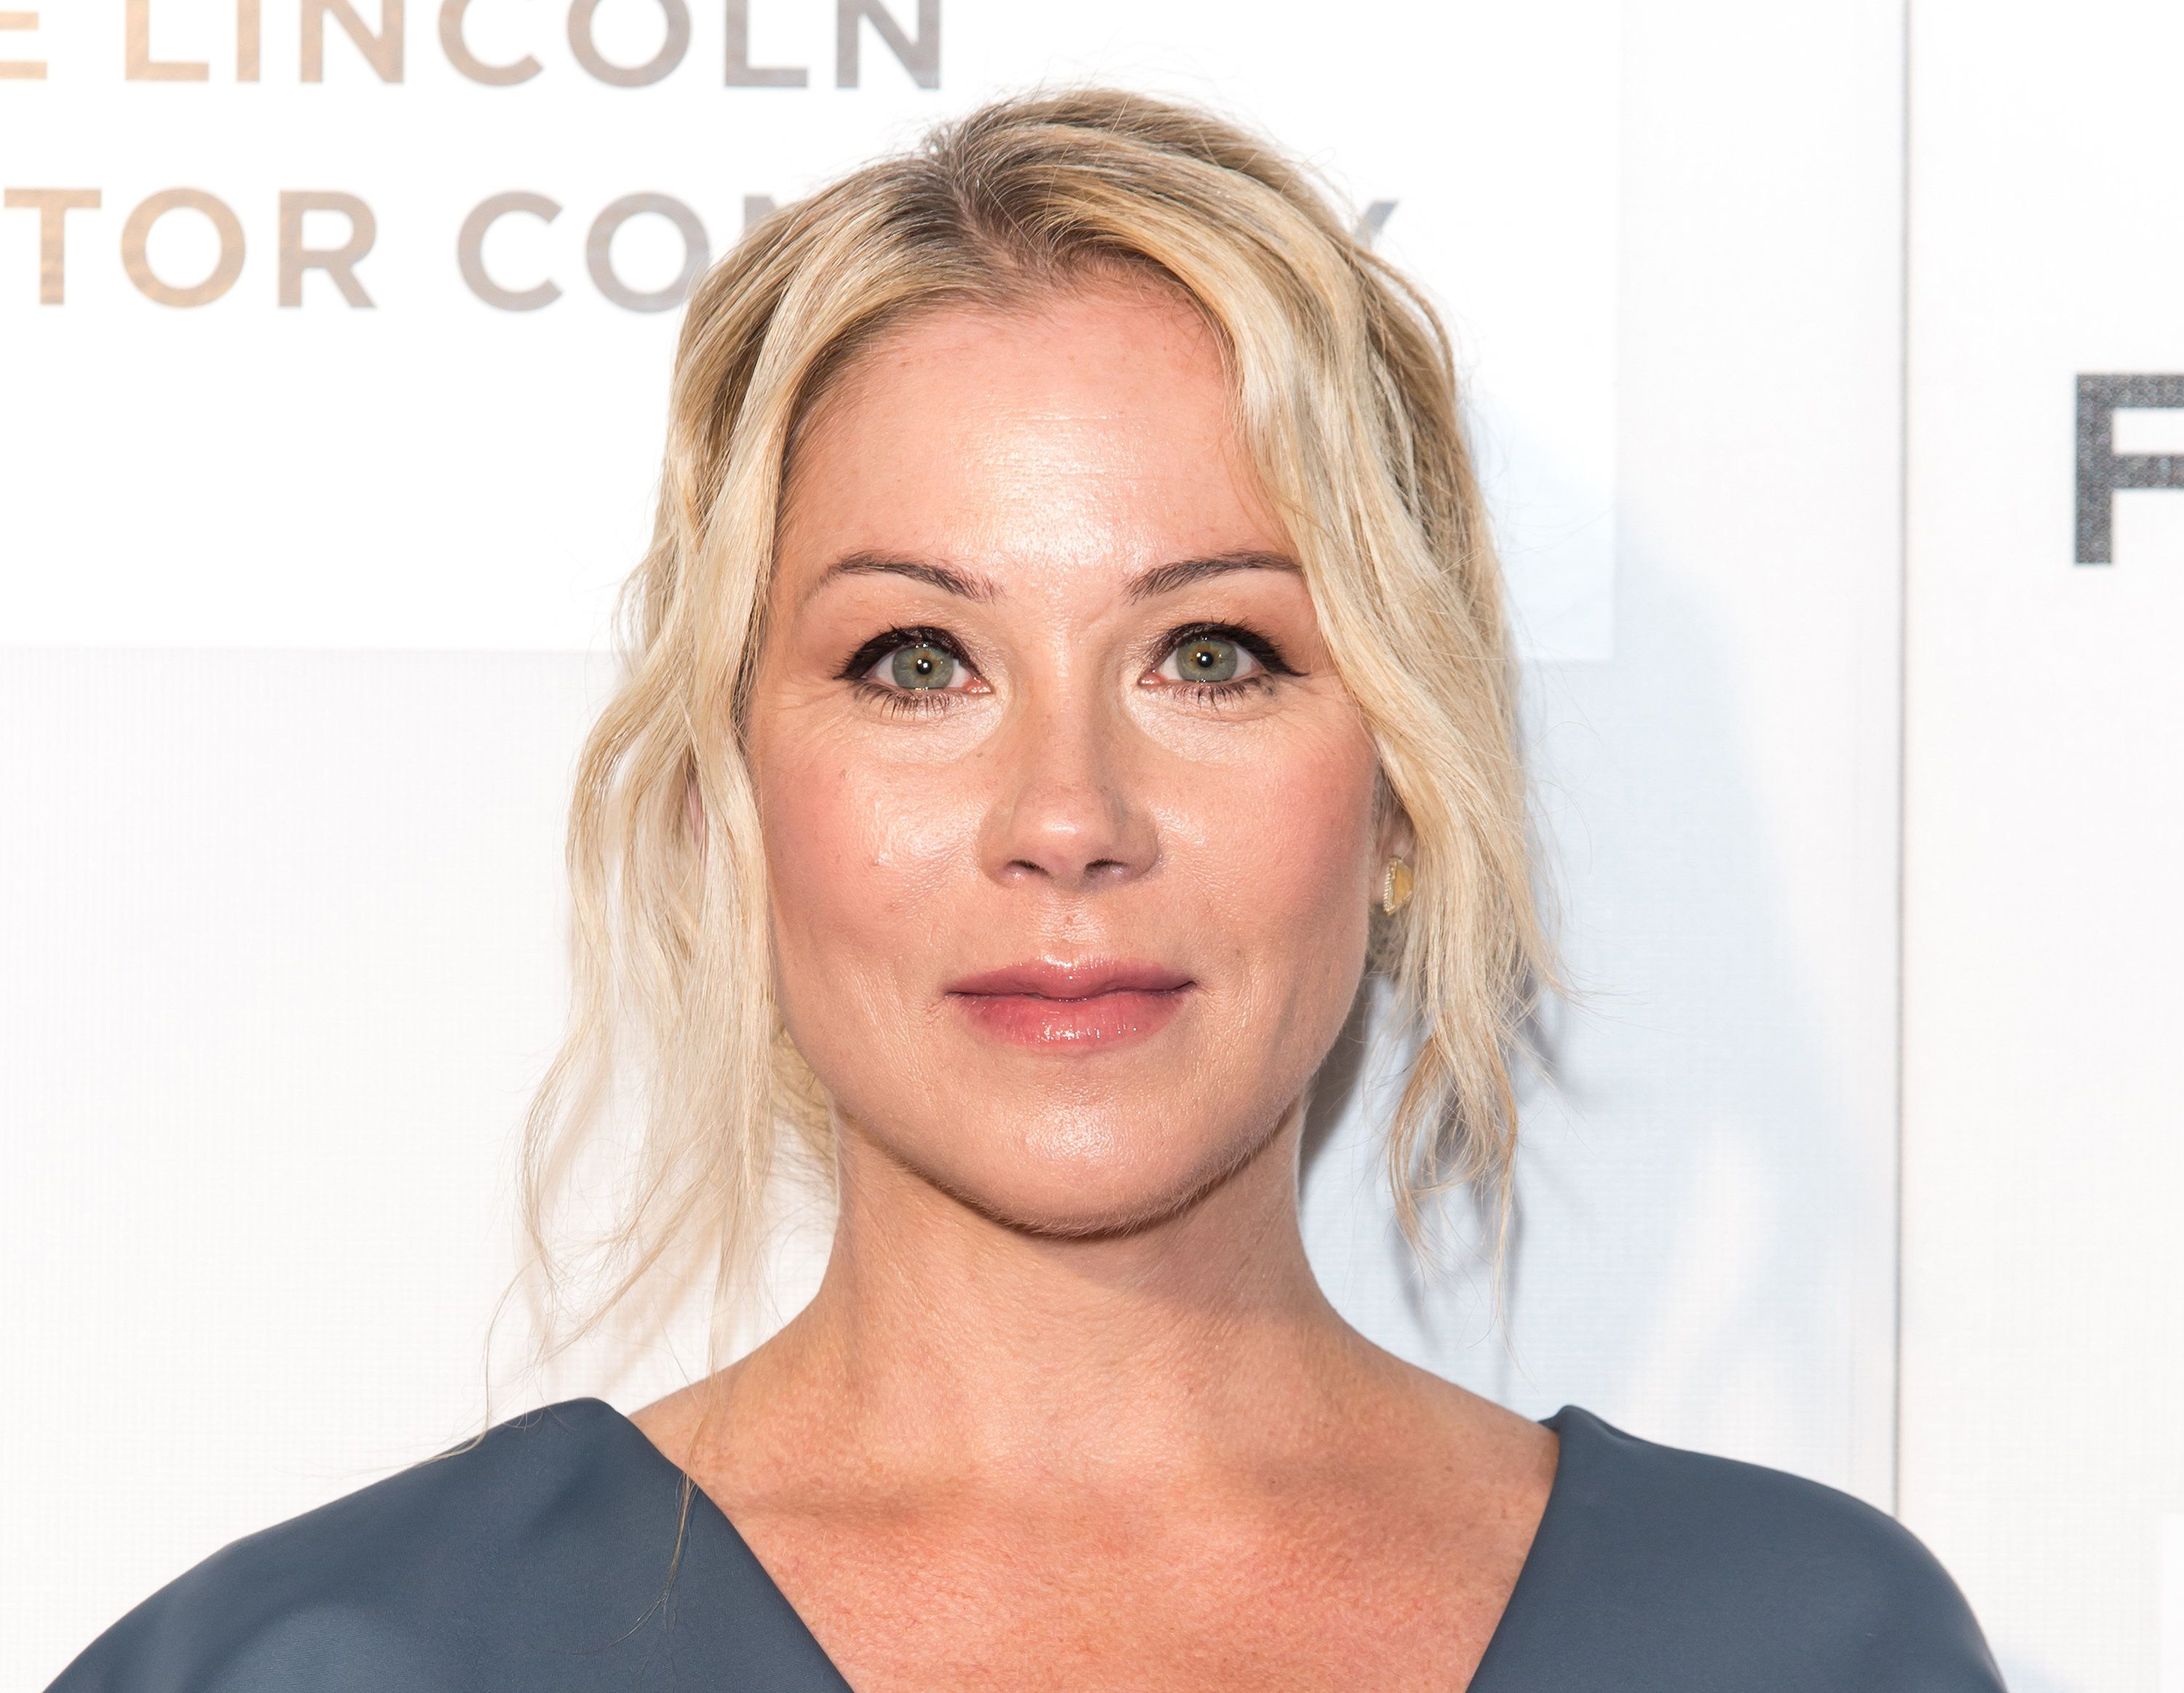 NEW YORK, NY - APRIL 16:  Actress Christina Applegate attends 'Youth In Oregon' Premiere during 2016 Tribeca Film Festival at John Zuccotti Theater at BMCC Tribeca Performing Arts Center on April 16, 2016 in New York City.  (Photo by Gilbert Carrasquillo/FilmMagic)